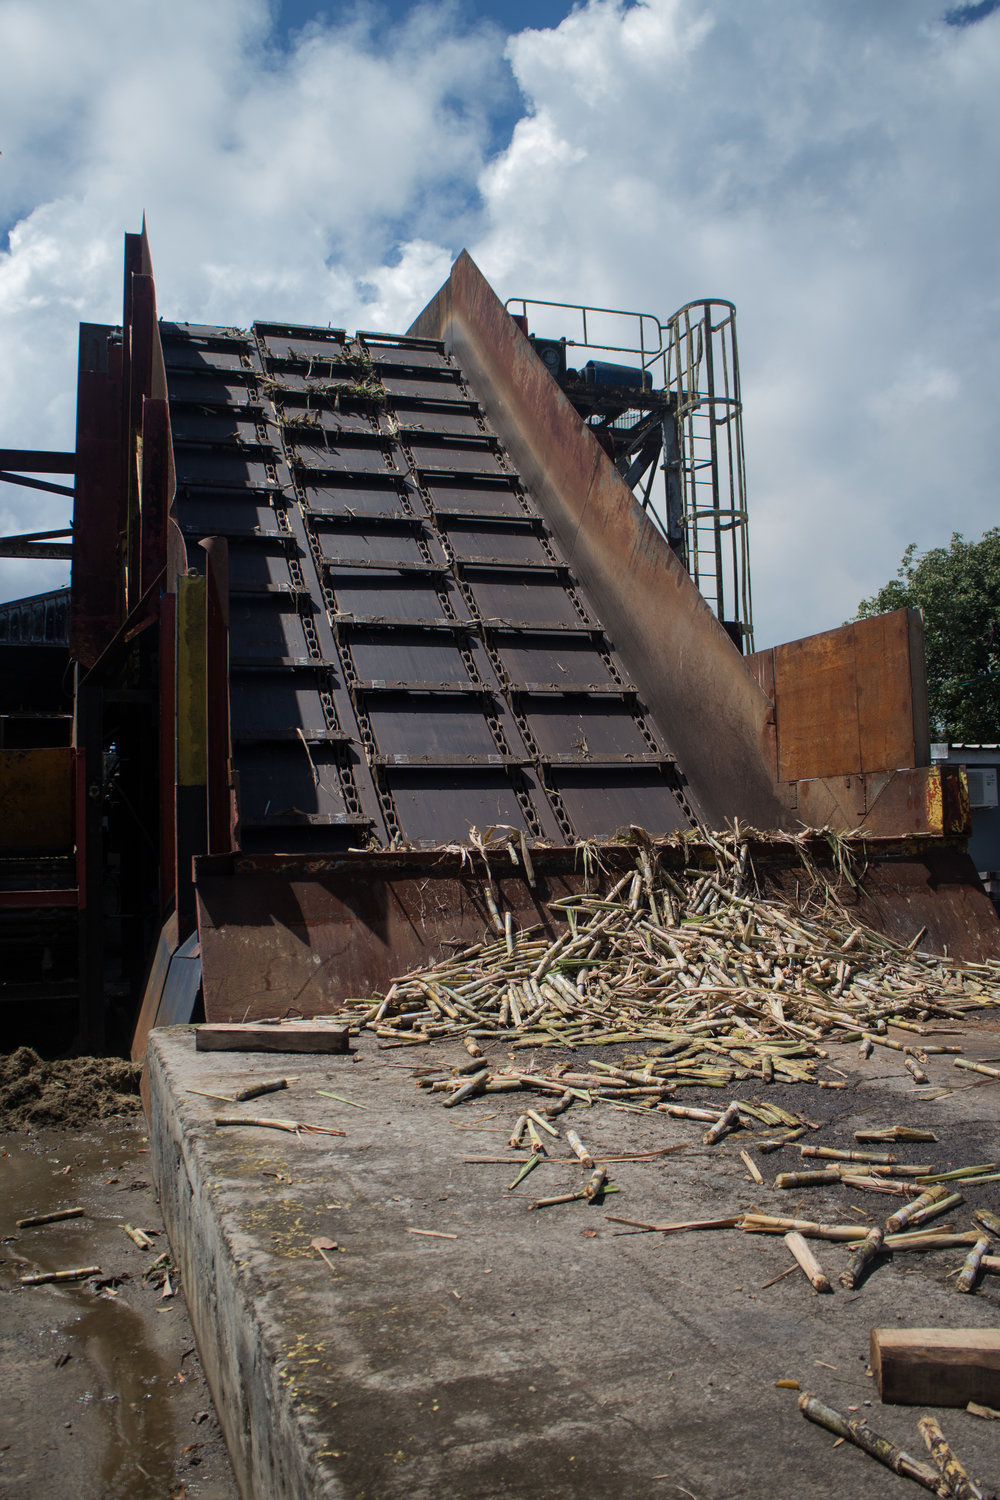 Cane crusher conveyance at rest